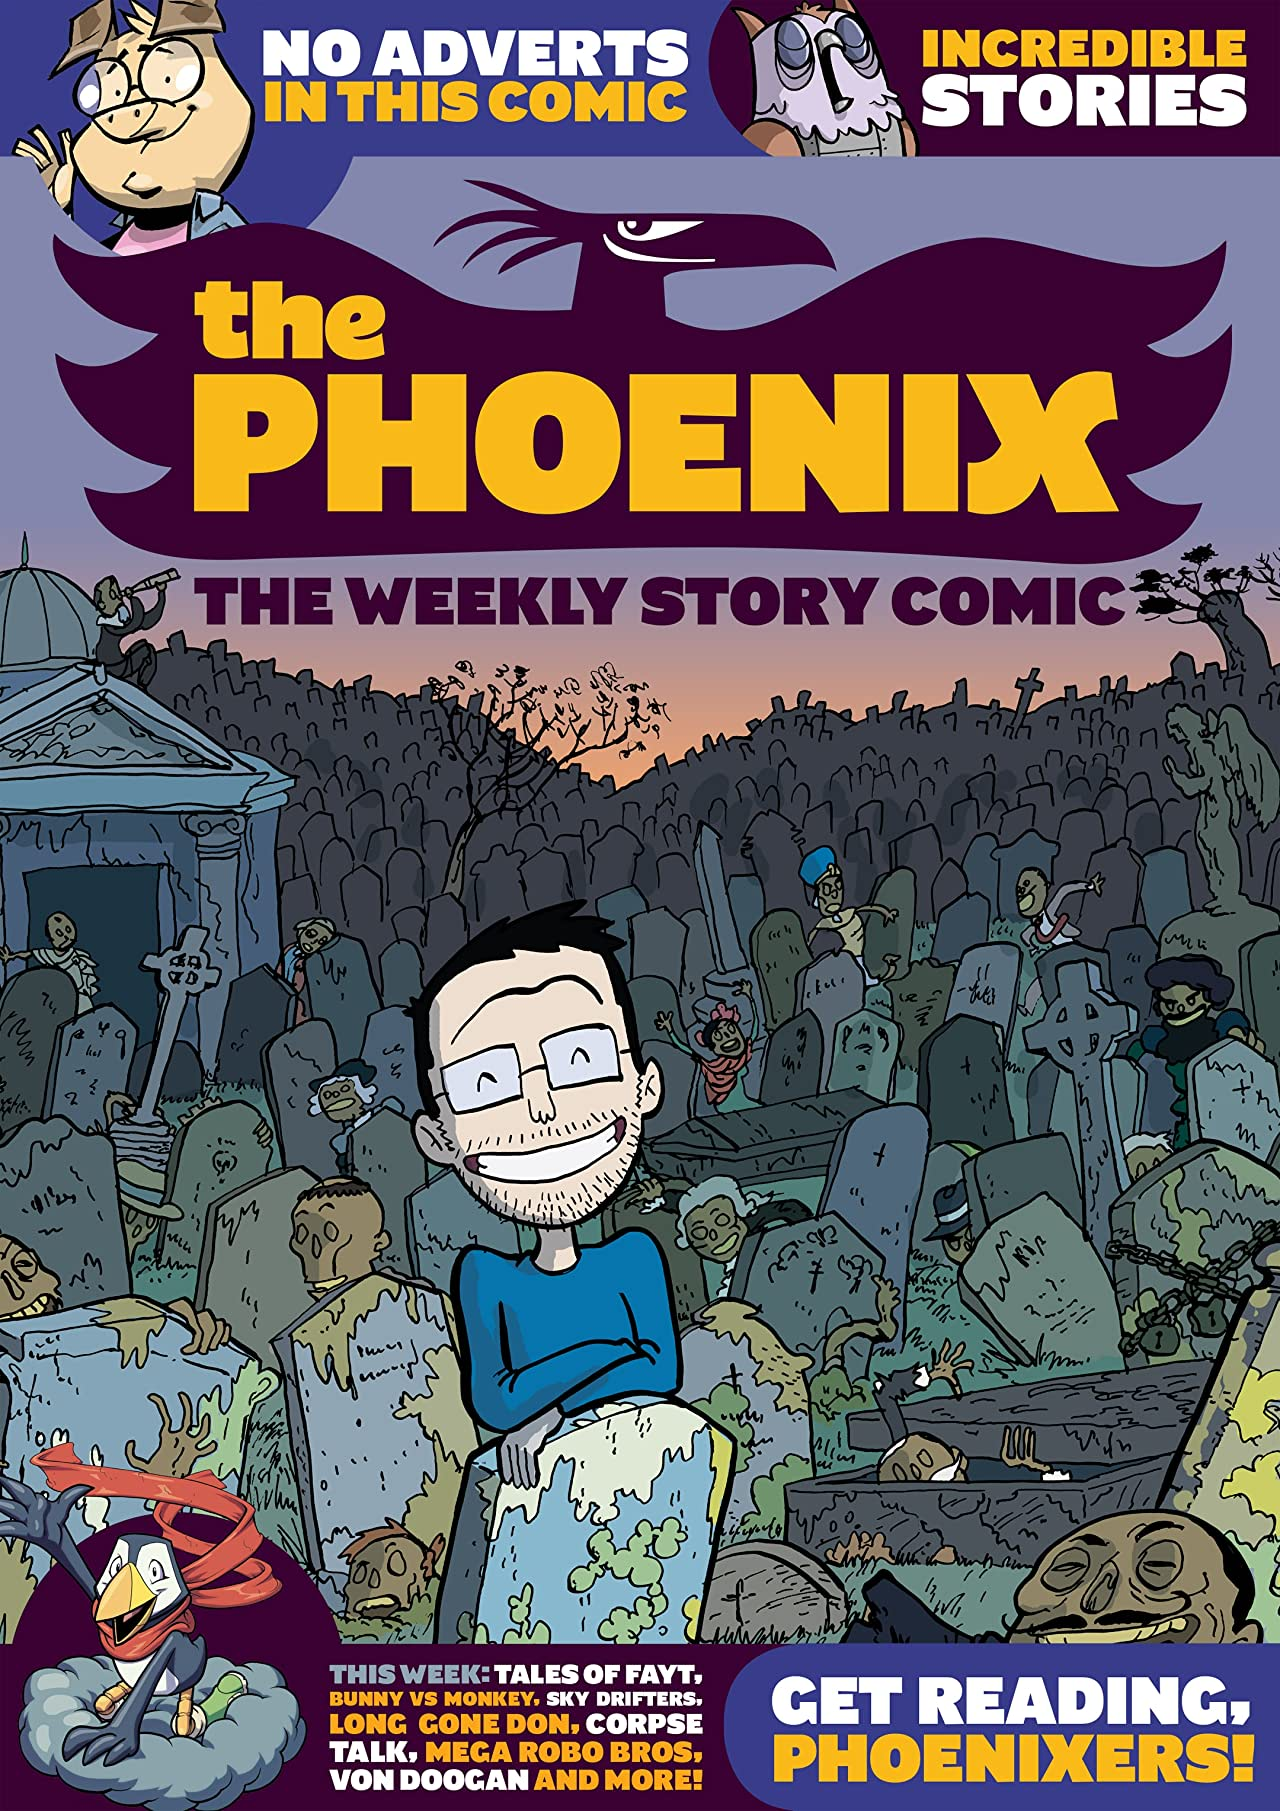 The Phoenix #129: The Weekly Story Comic